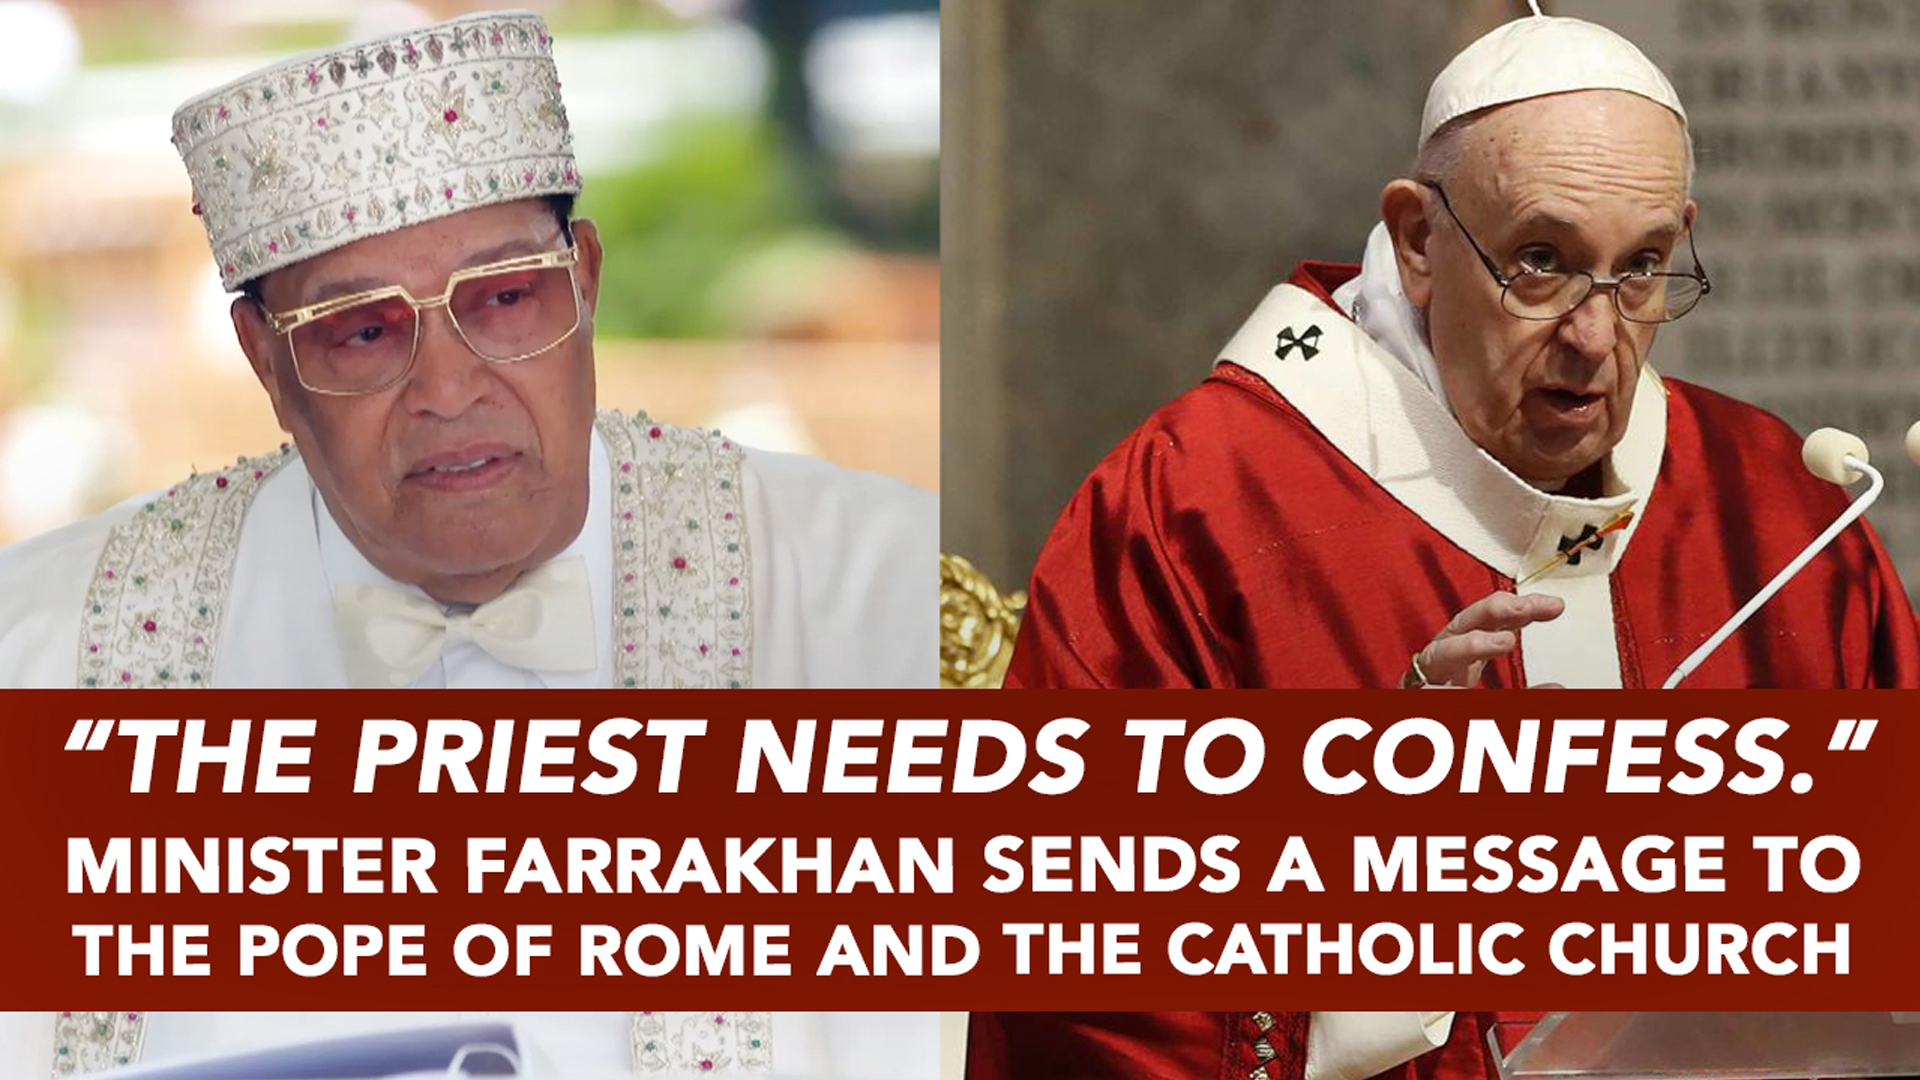 Minister Farrakhan Warns Pope Francis and Catholic Church